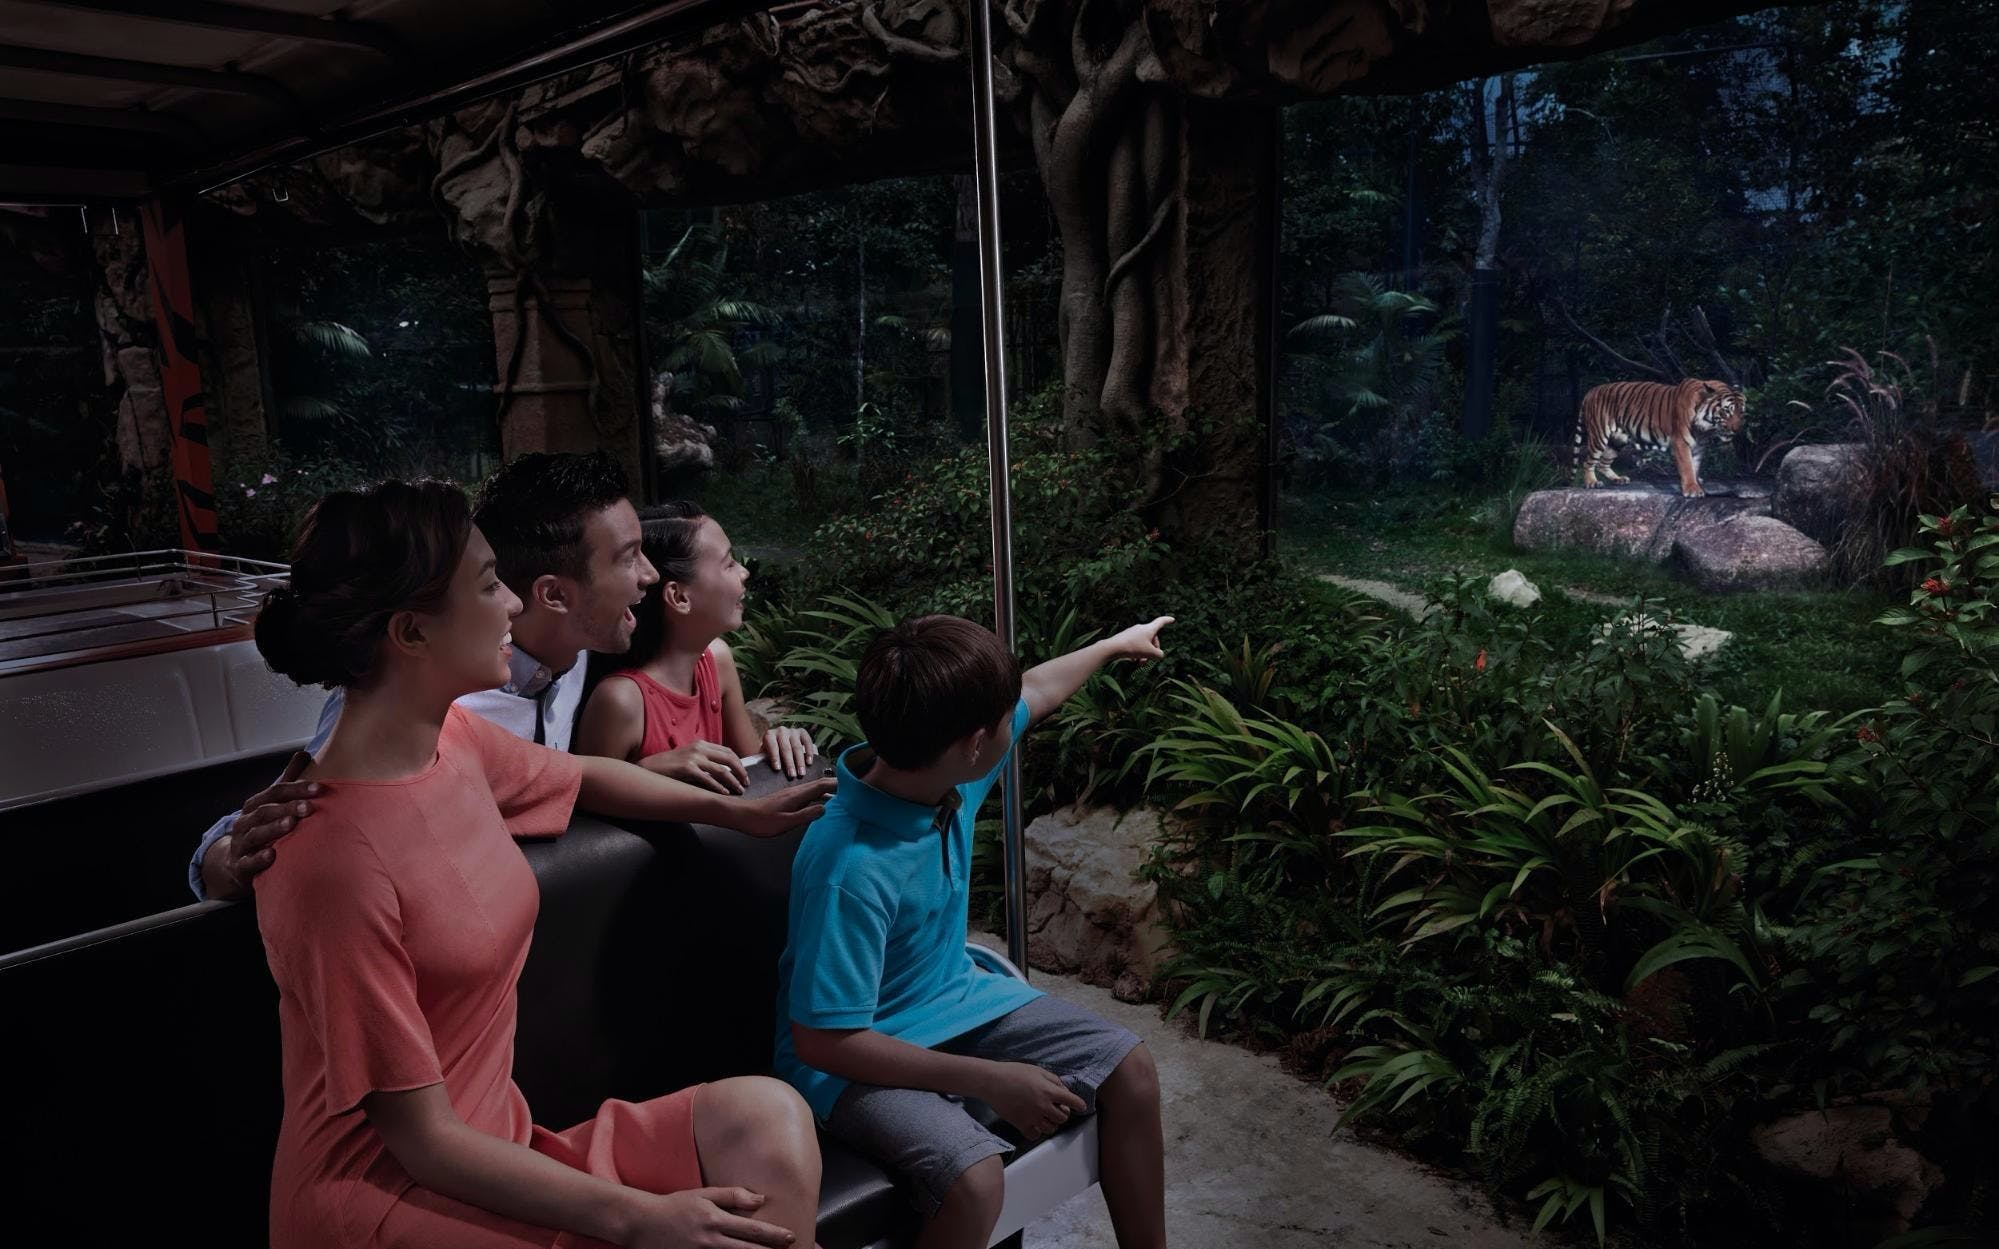 Best Things to do in Best Things to do in Singapore - Singapore Night Safari  - 2